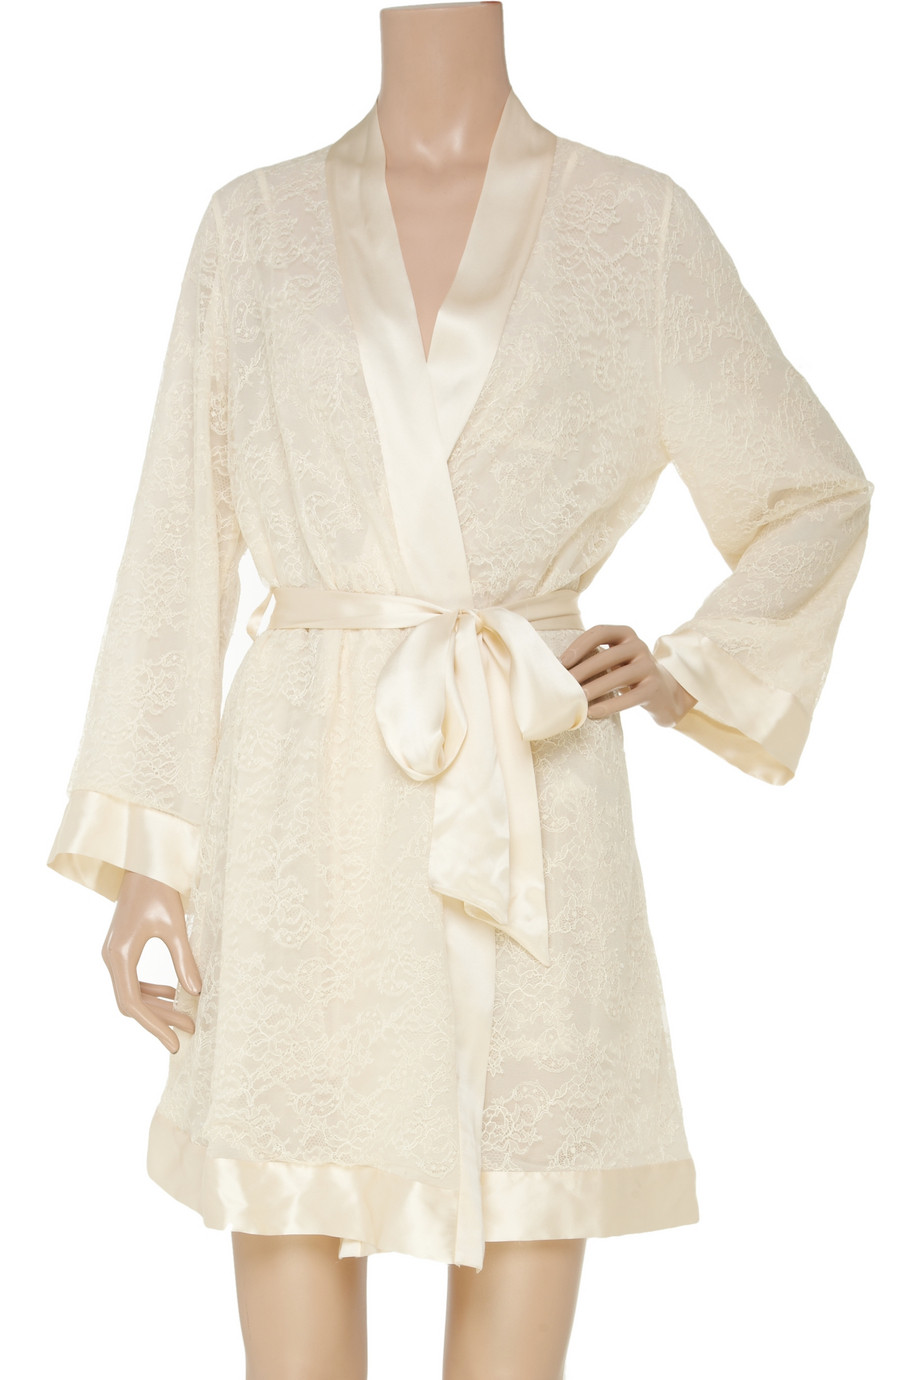 Magnificent Silk Lace Dressing Gown Vignette - Ball Gown Wedding ...